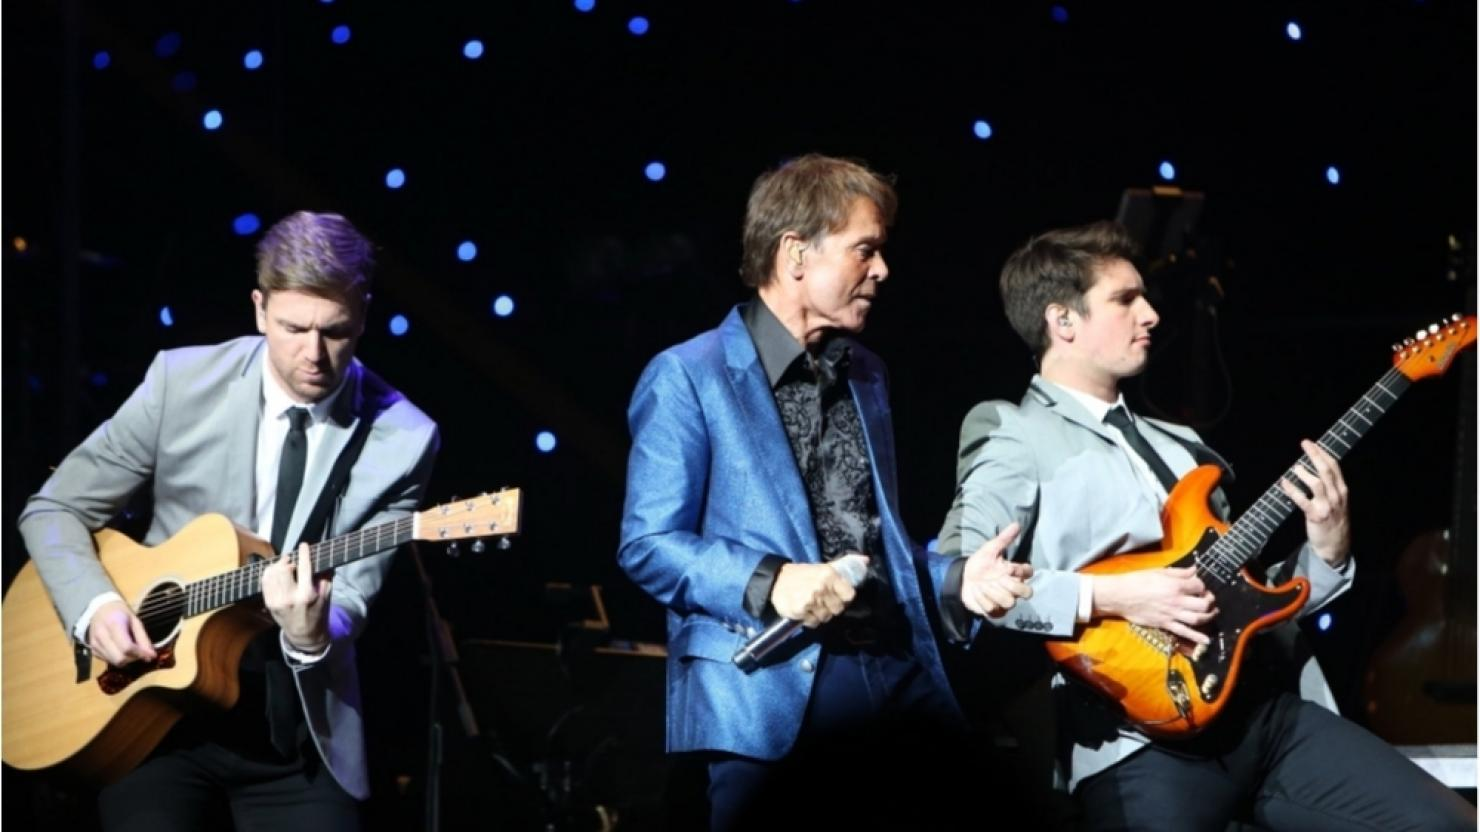 Cliff Richard wows fans at Muscat's Royal Opera House